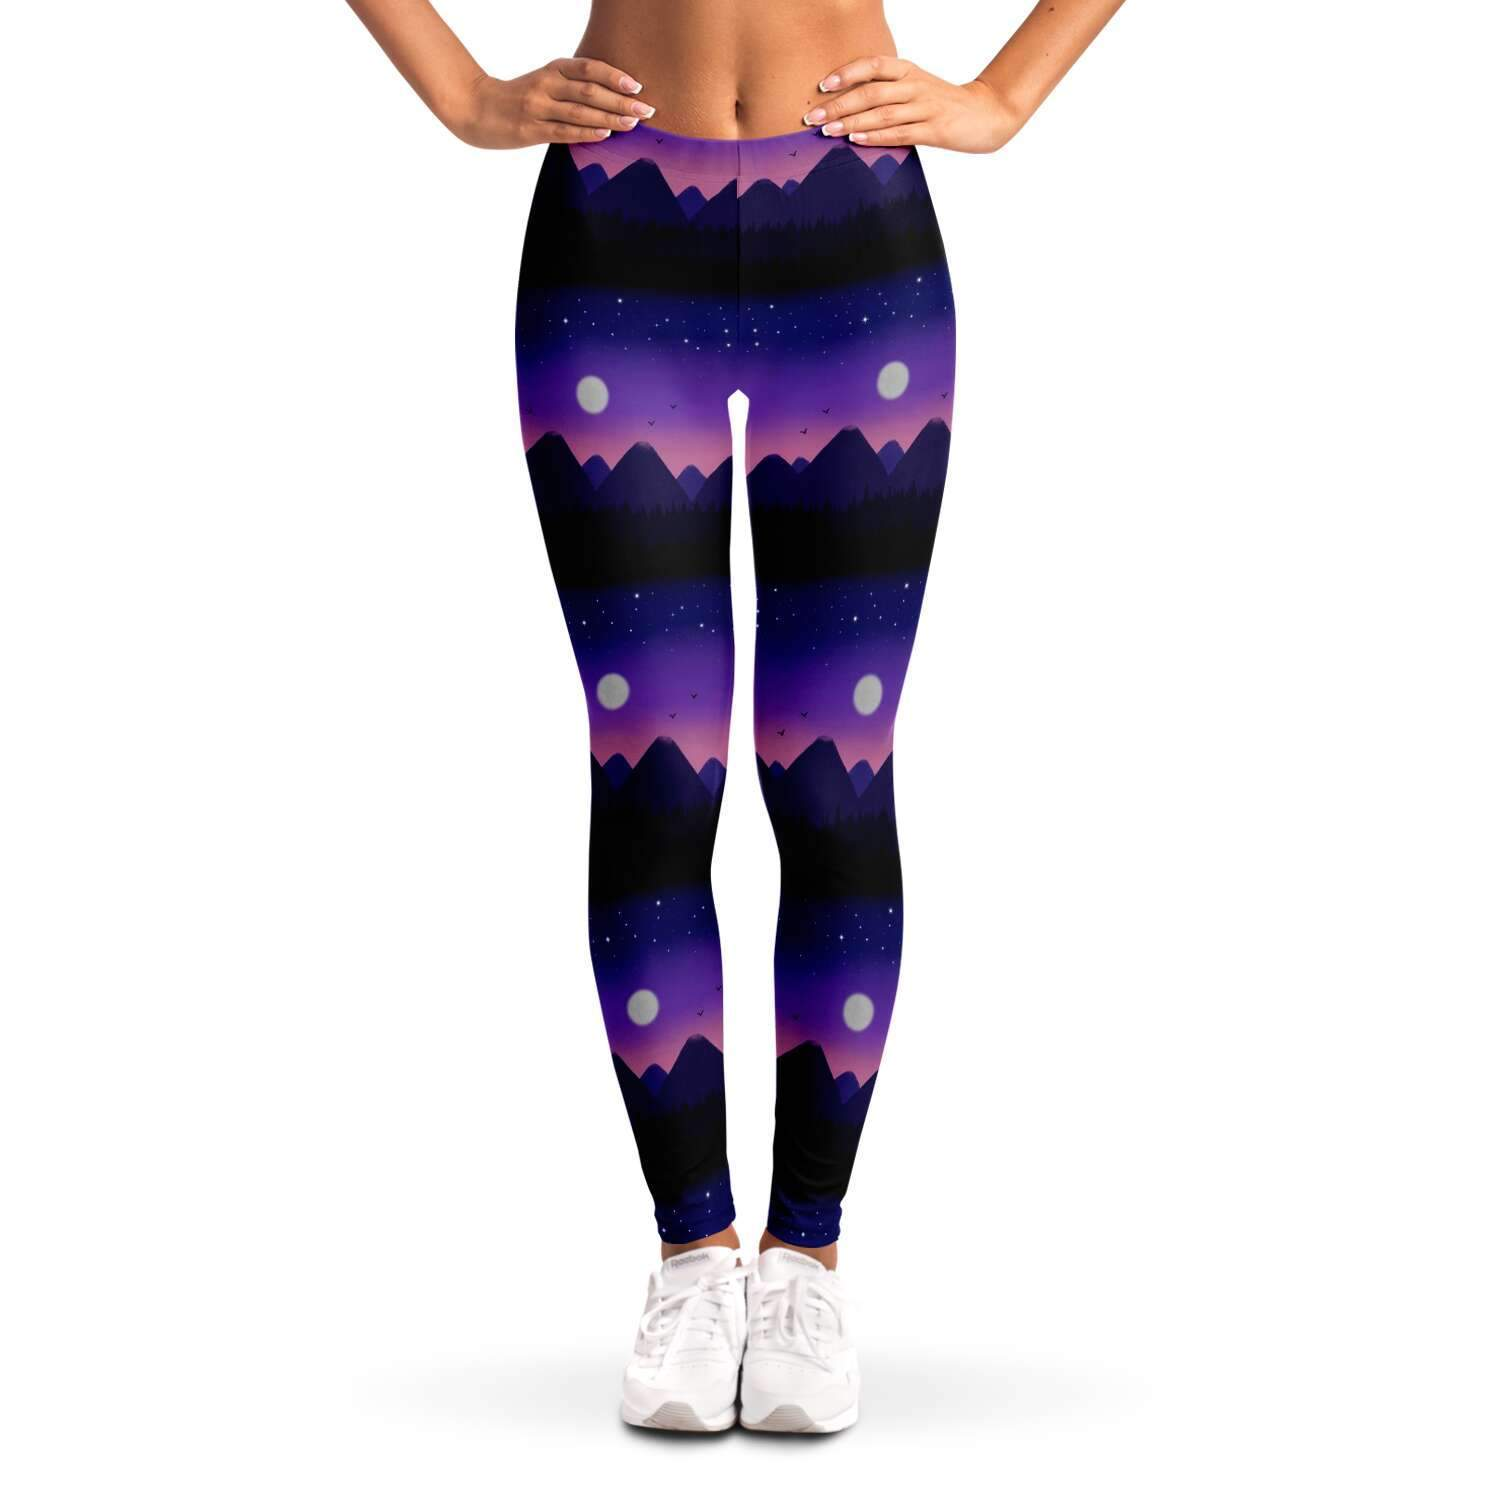 Purple Mountain Ladies Leggings - Fair Dinkum Fashion